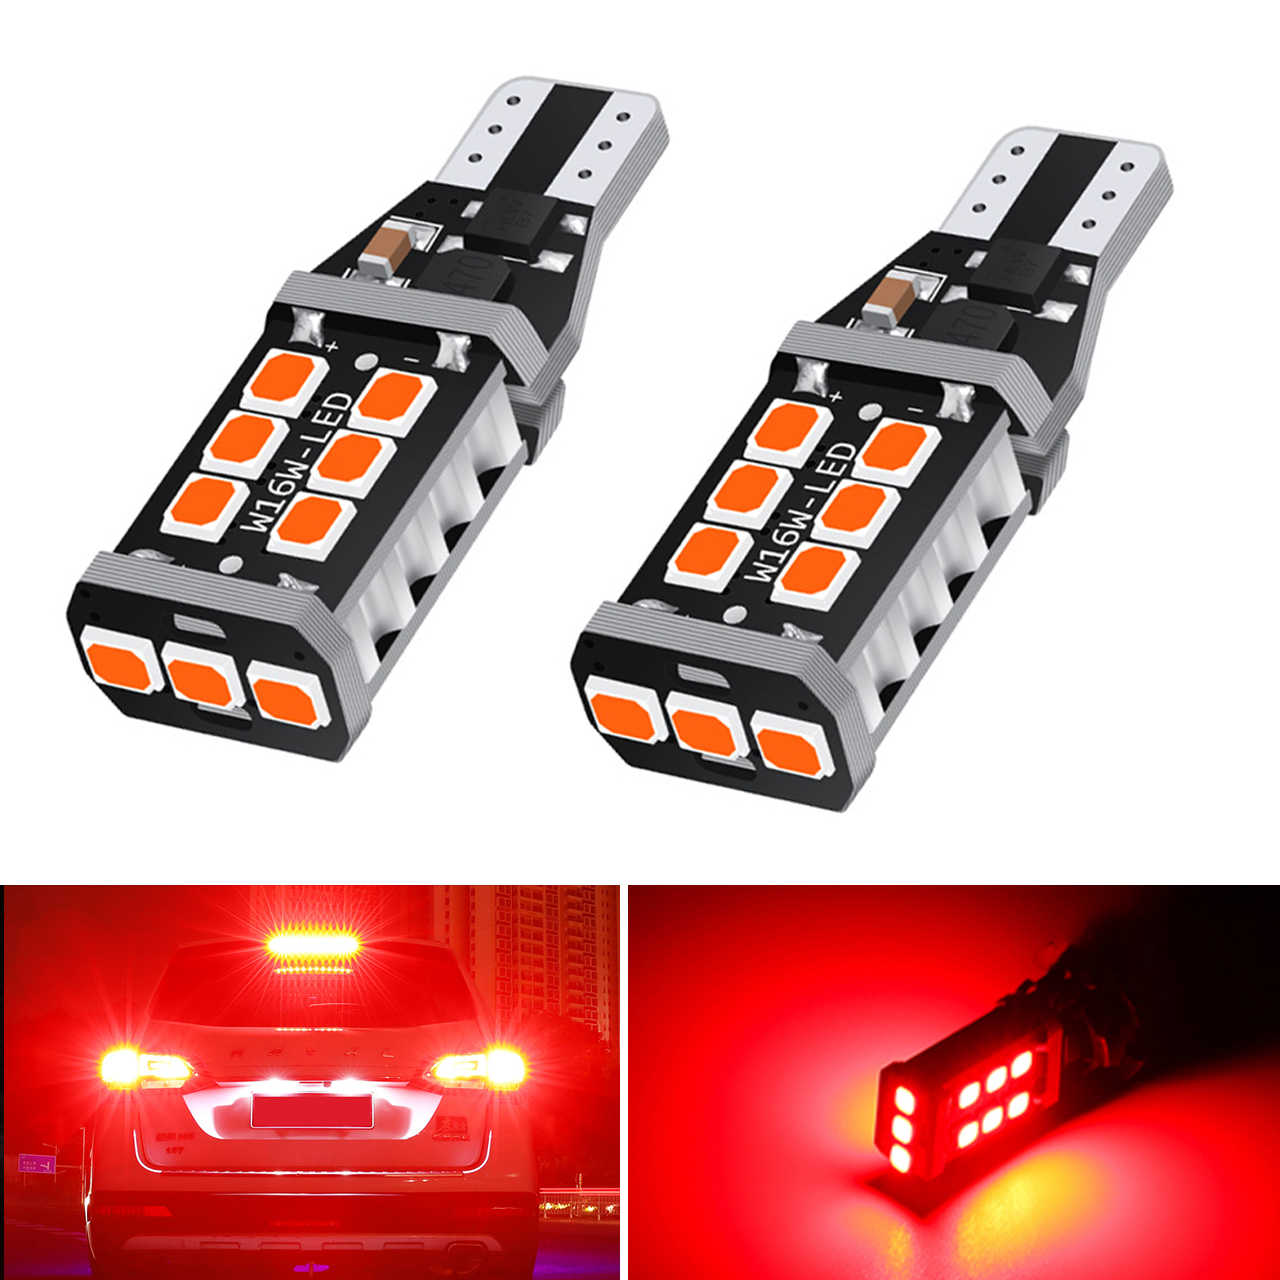 2x T15 W16W Led Auto Signal Light Bulb T10 W5W 2835LED Verlichting Canbus Geen Fout High Power Wit Dc 12V Reverse Back Parking Lampen